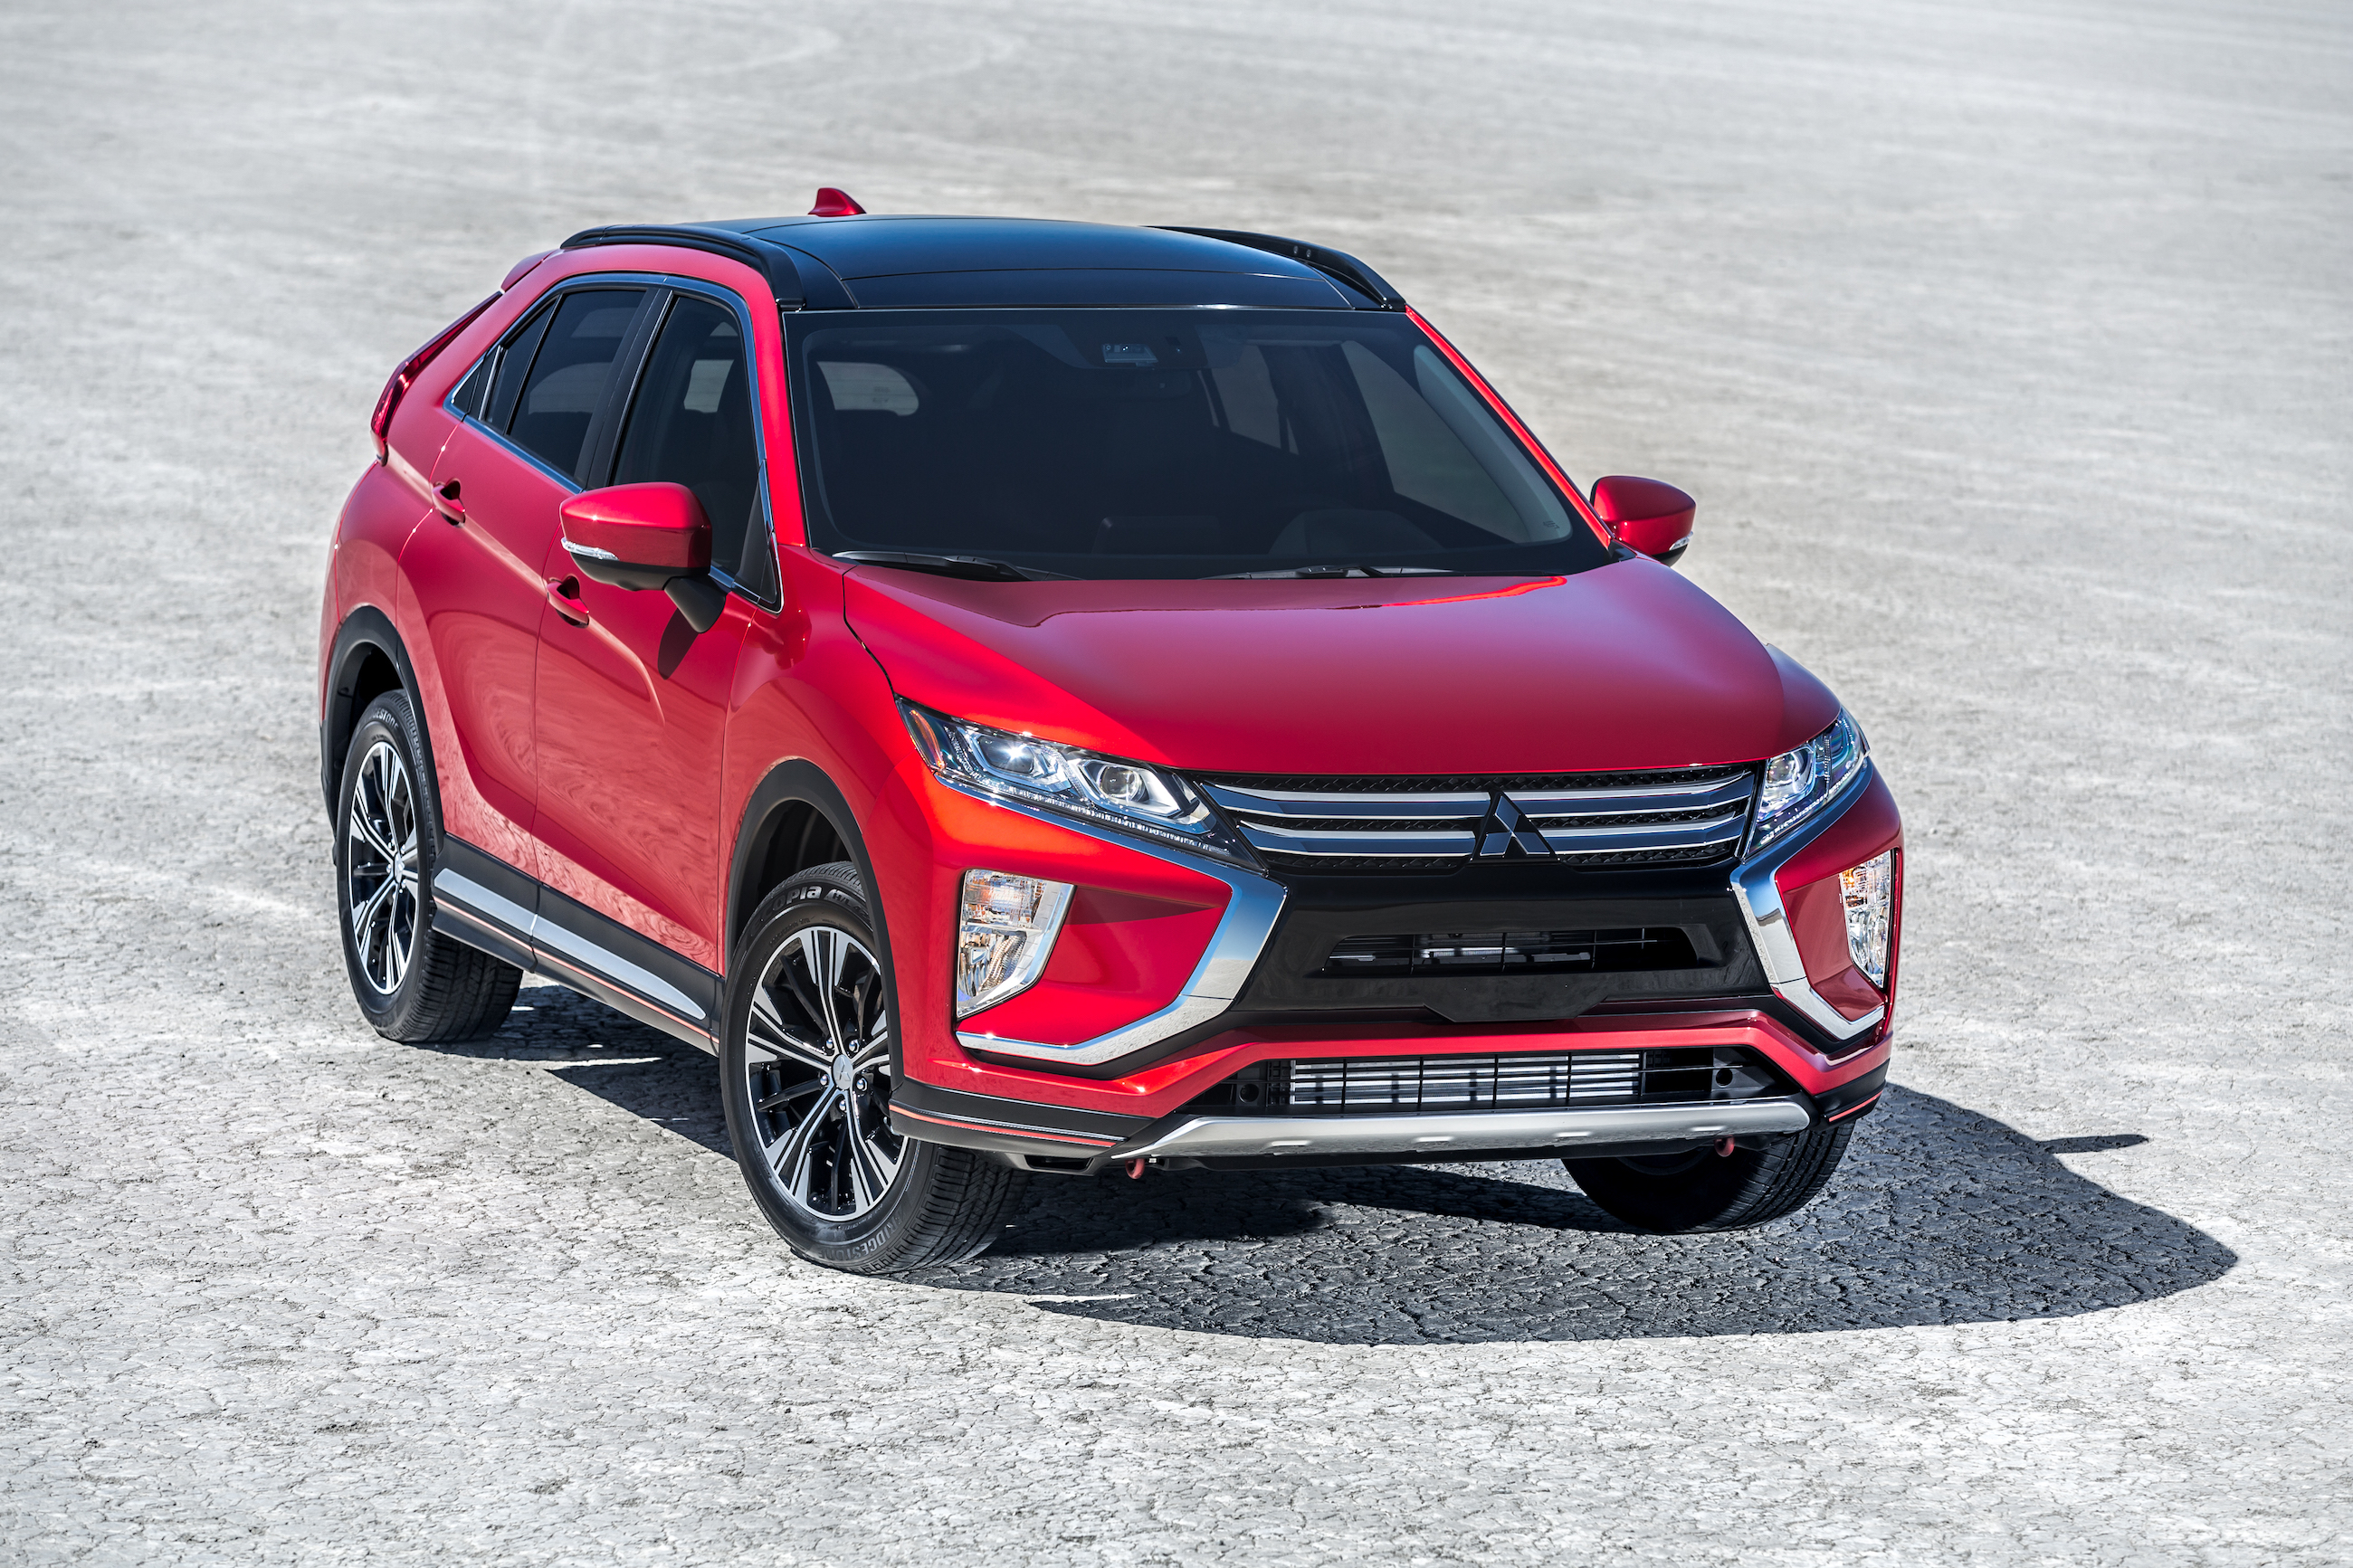 2018 Mitsubishi Eclipse Cross Heads To Dealerships For